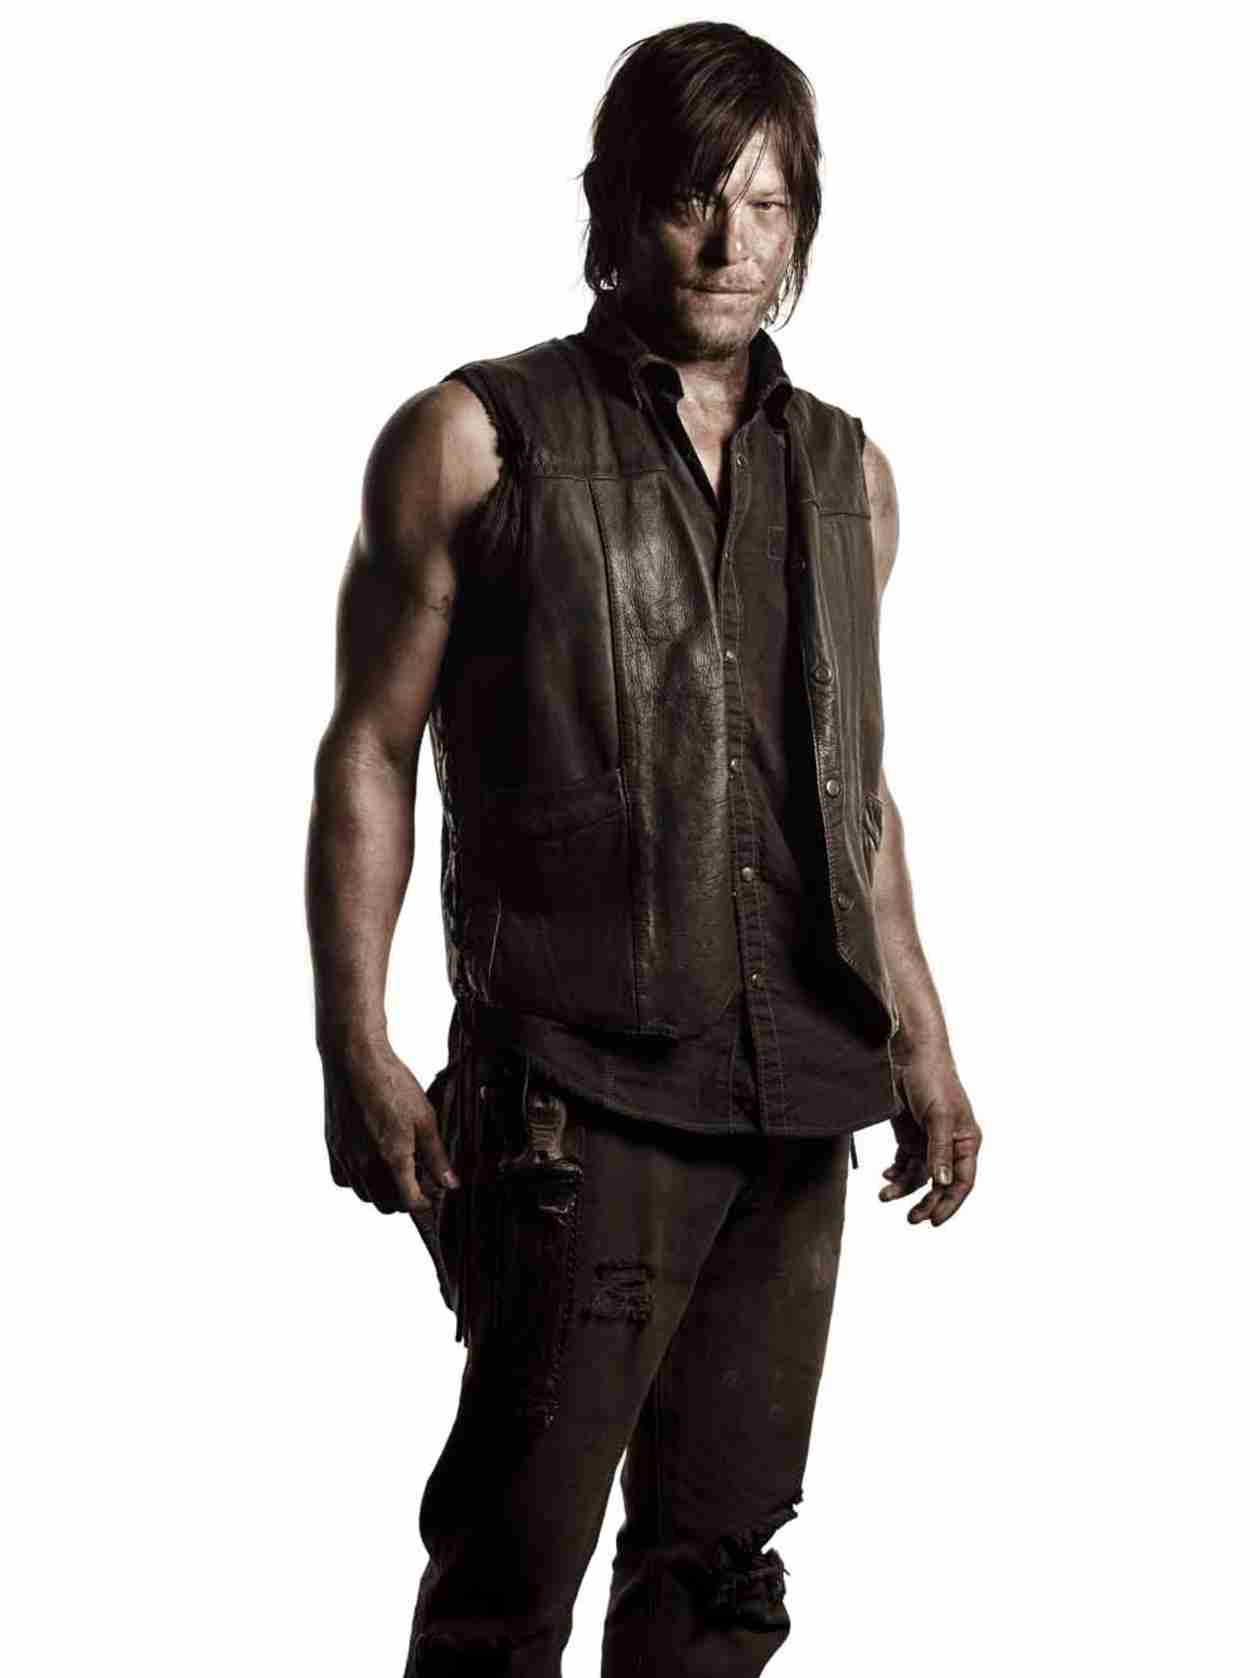 Daryl Dixon Takes Aim in New Walking Dead Season 5 Photos